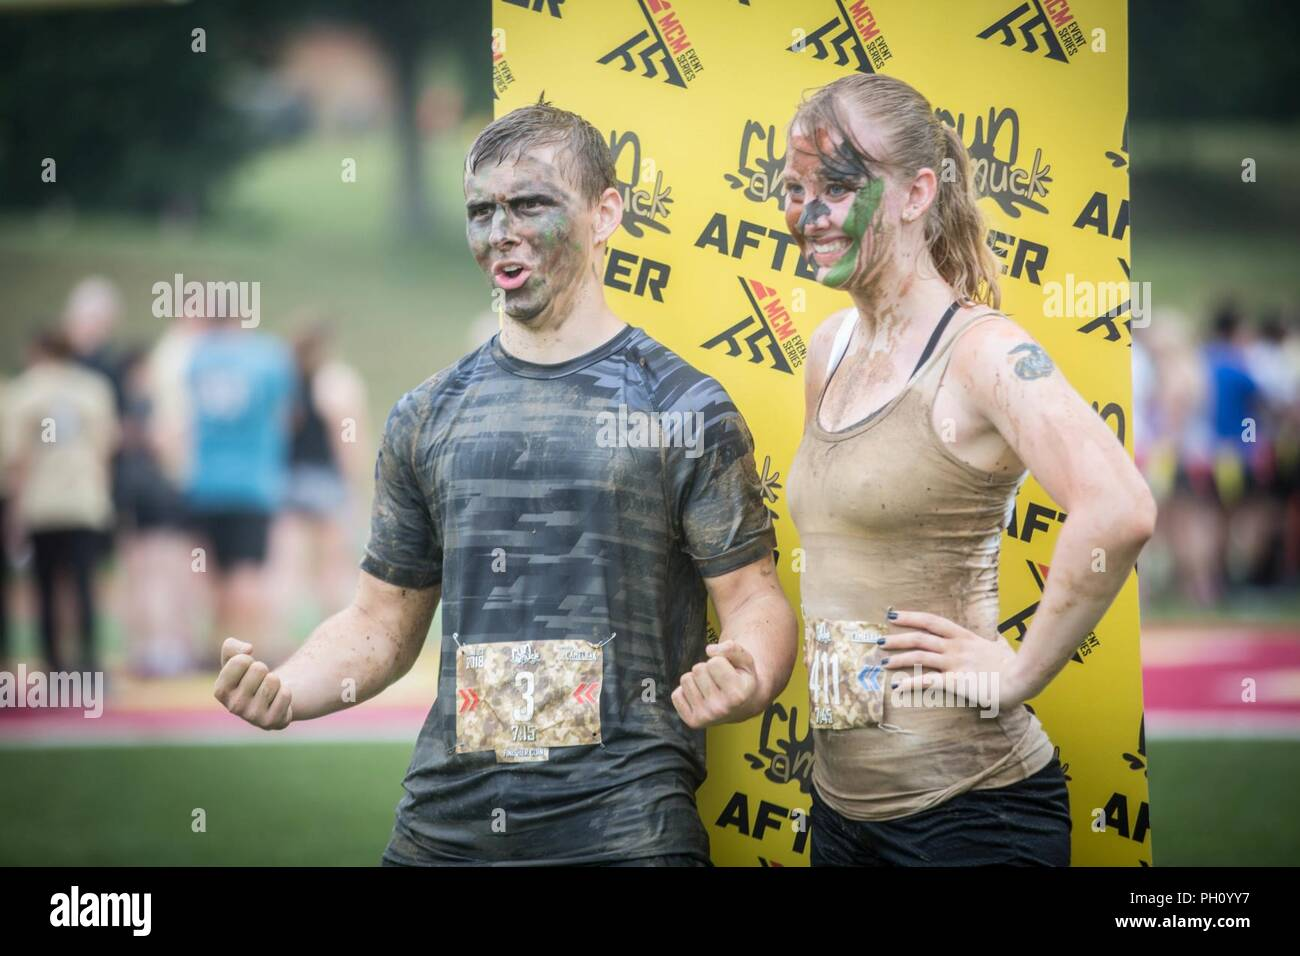 Participants pose for a photo following the annual Marine Corps Marathon (MCM) Run Amuck at Marine Corps Base Quantico, Va., June 23, 2018. The Run Amuck is the MCM's messiest mud and obstacle course consisting of a four-mile trail with 21 challenges to include body weight exercises, rope climbs, and mud pits. - Stock Image